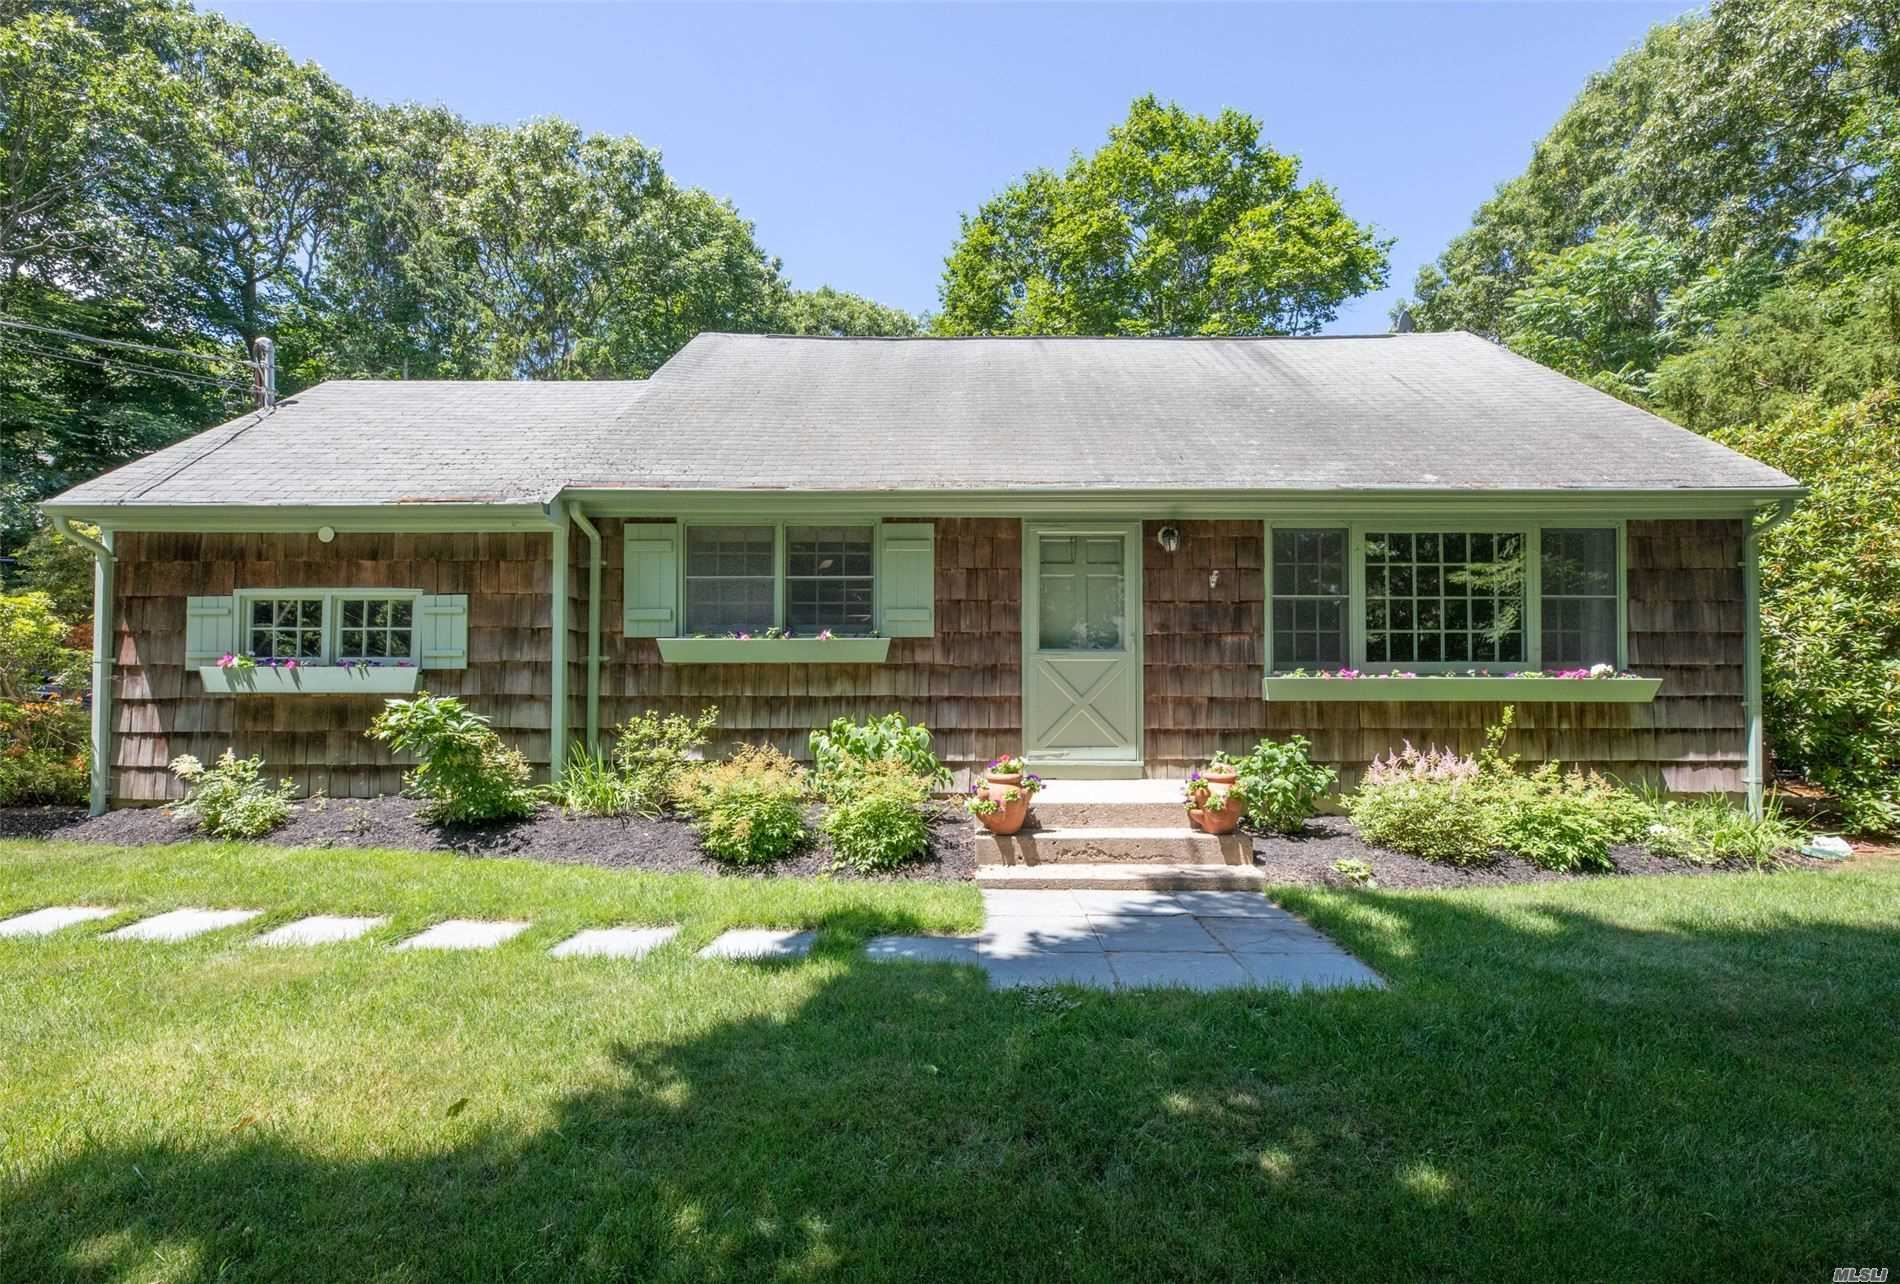 111 Overhill Rd, Wading River, NY 11792 - MLS#: 3226983